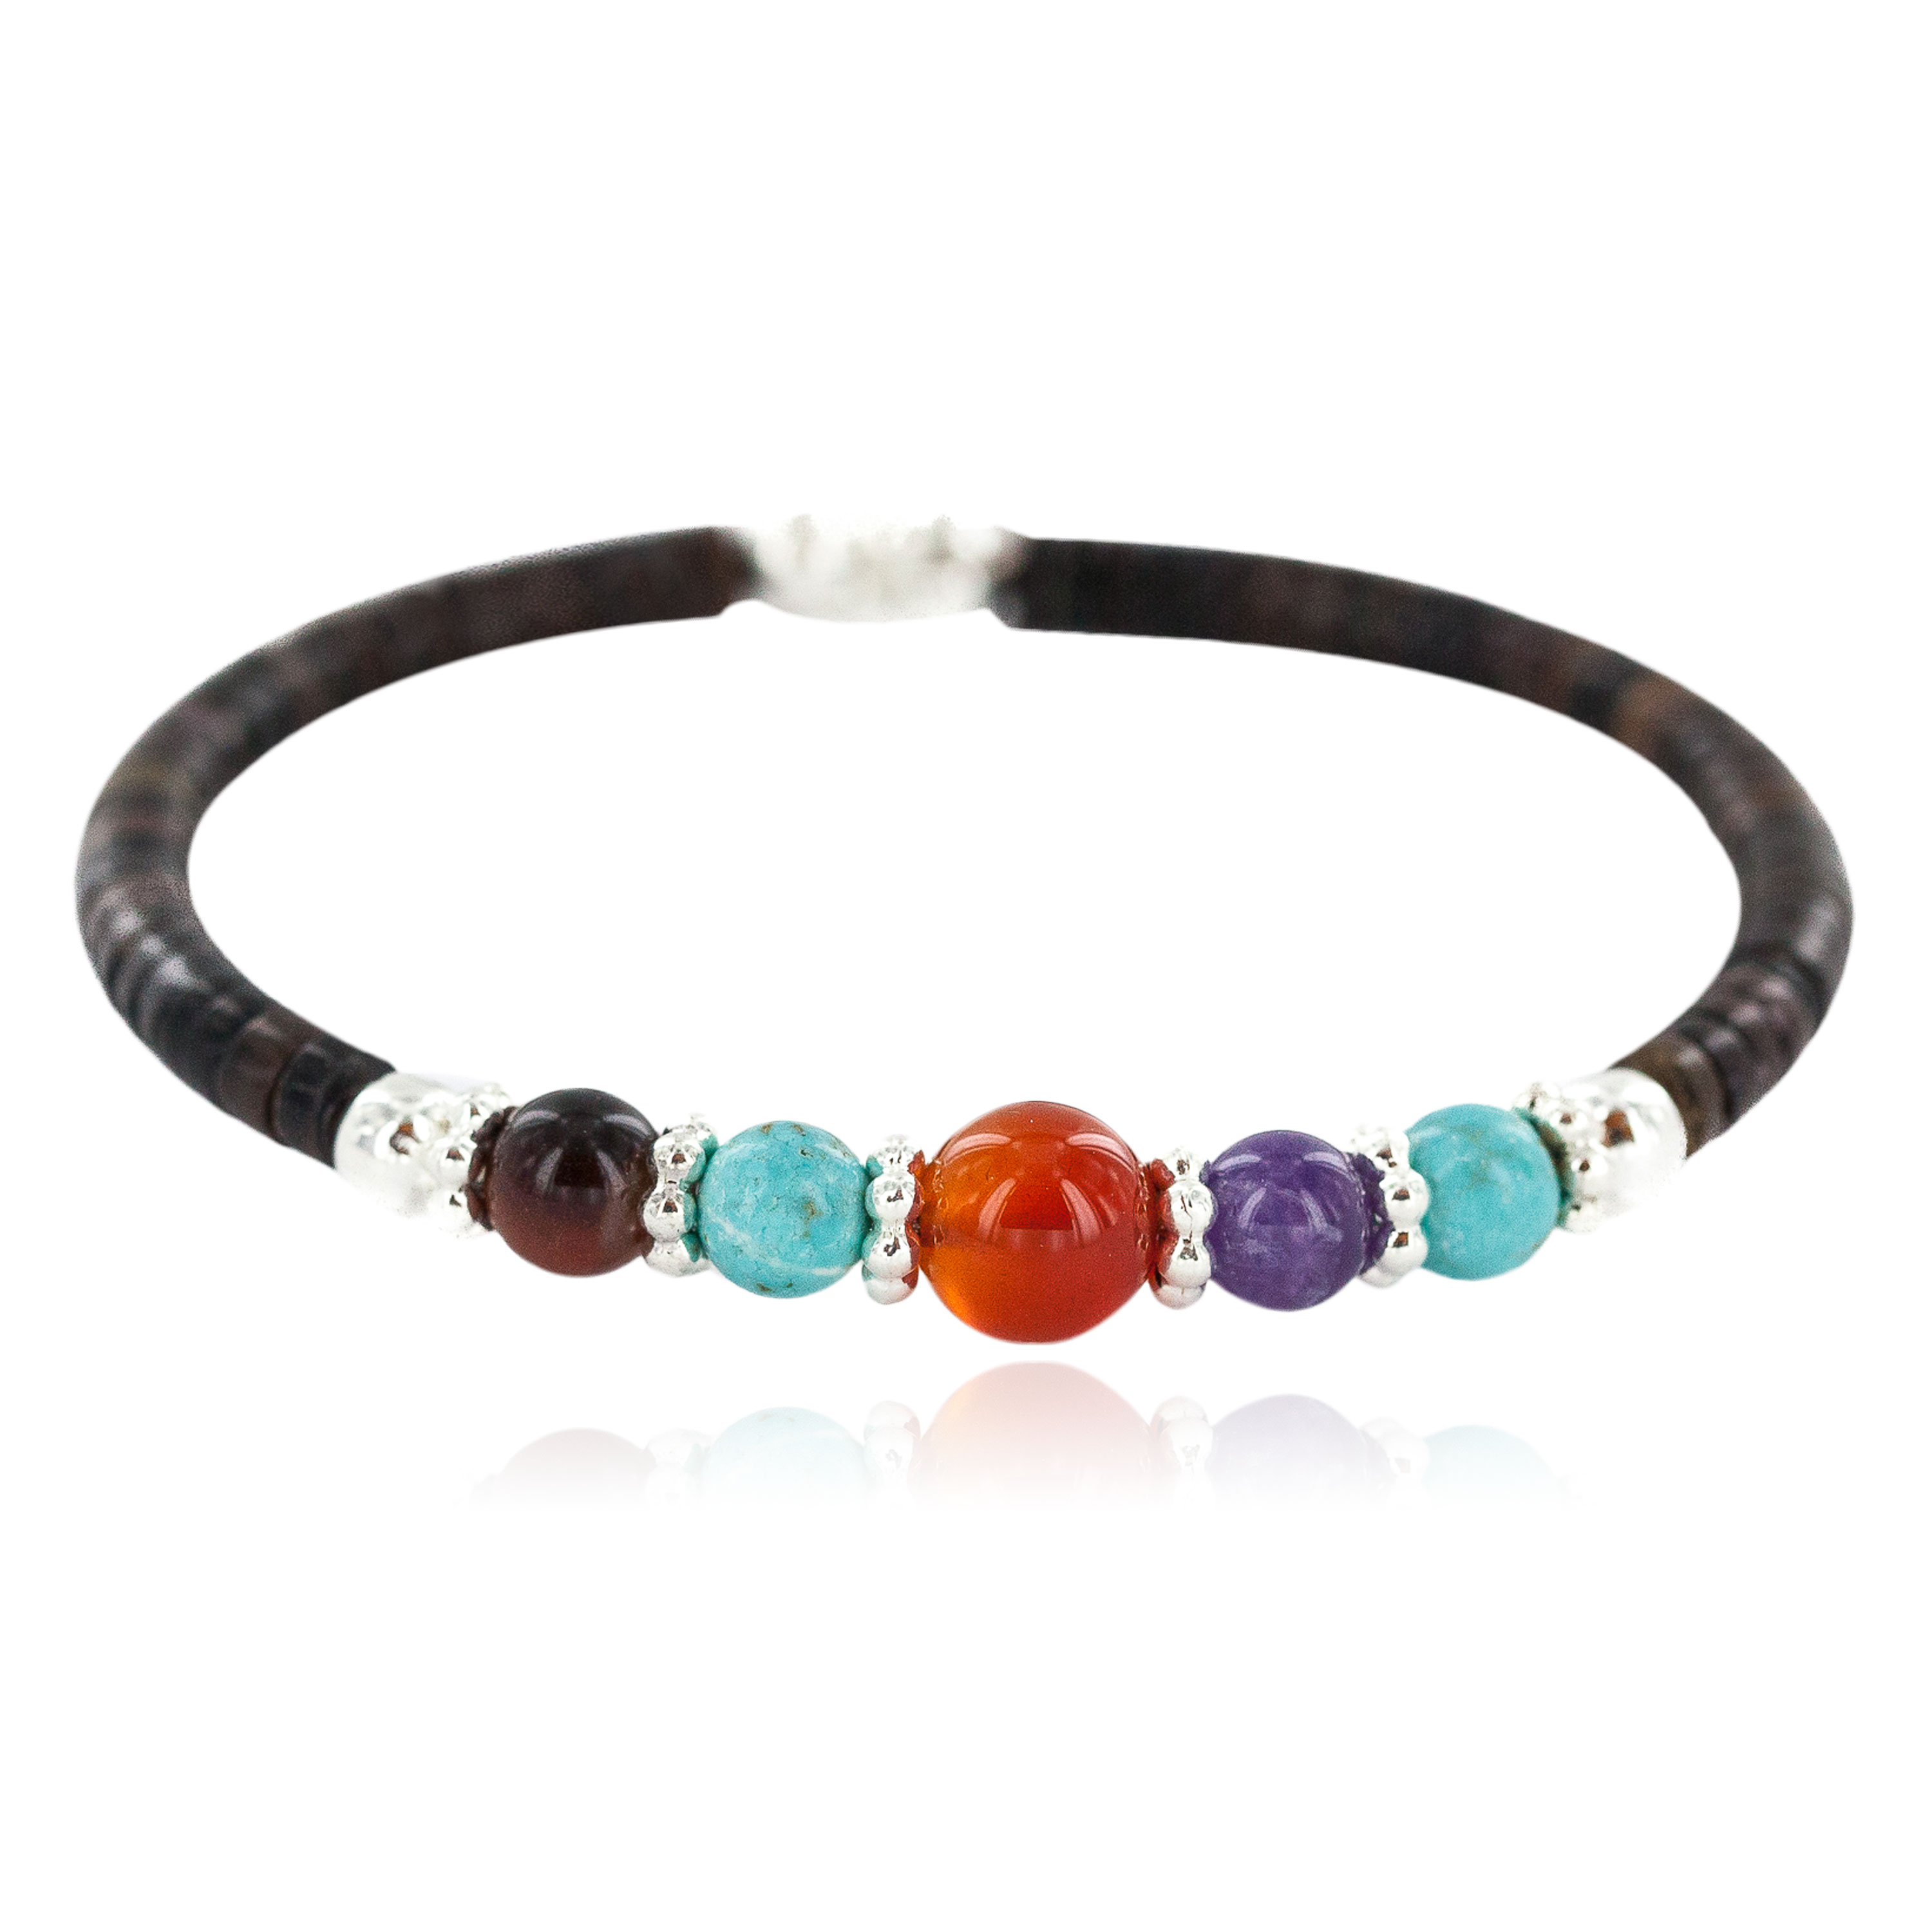 Navajo Certified Authentic Natural Carnelian Tigers Eye Heishi Native American Adjustable Wrap Bracelet 13181-1 All Products NB160528000730 13181-1 (by LomaSiiva)